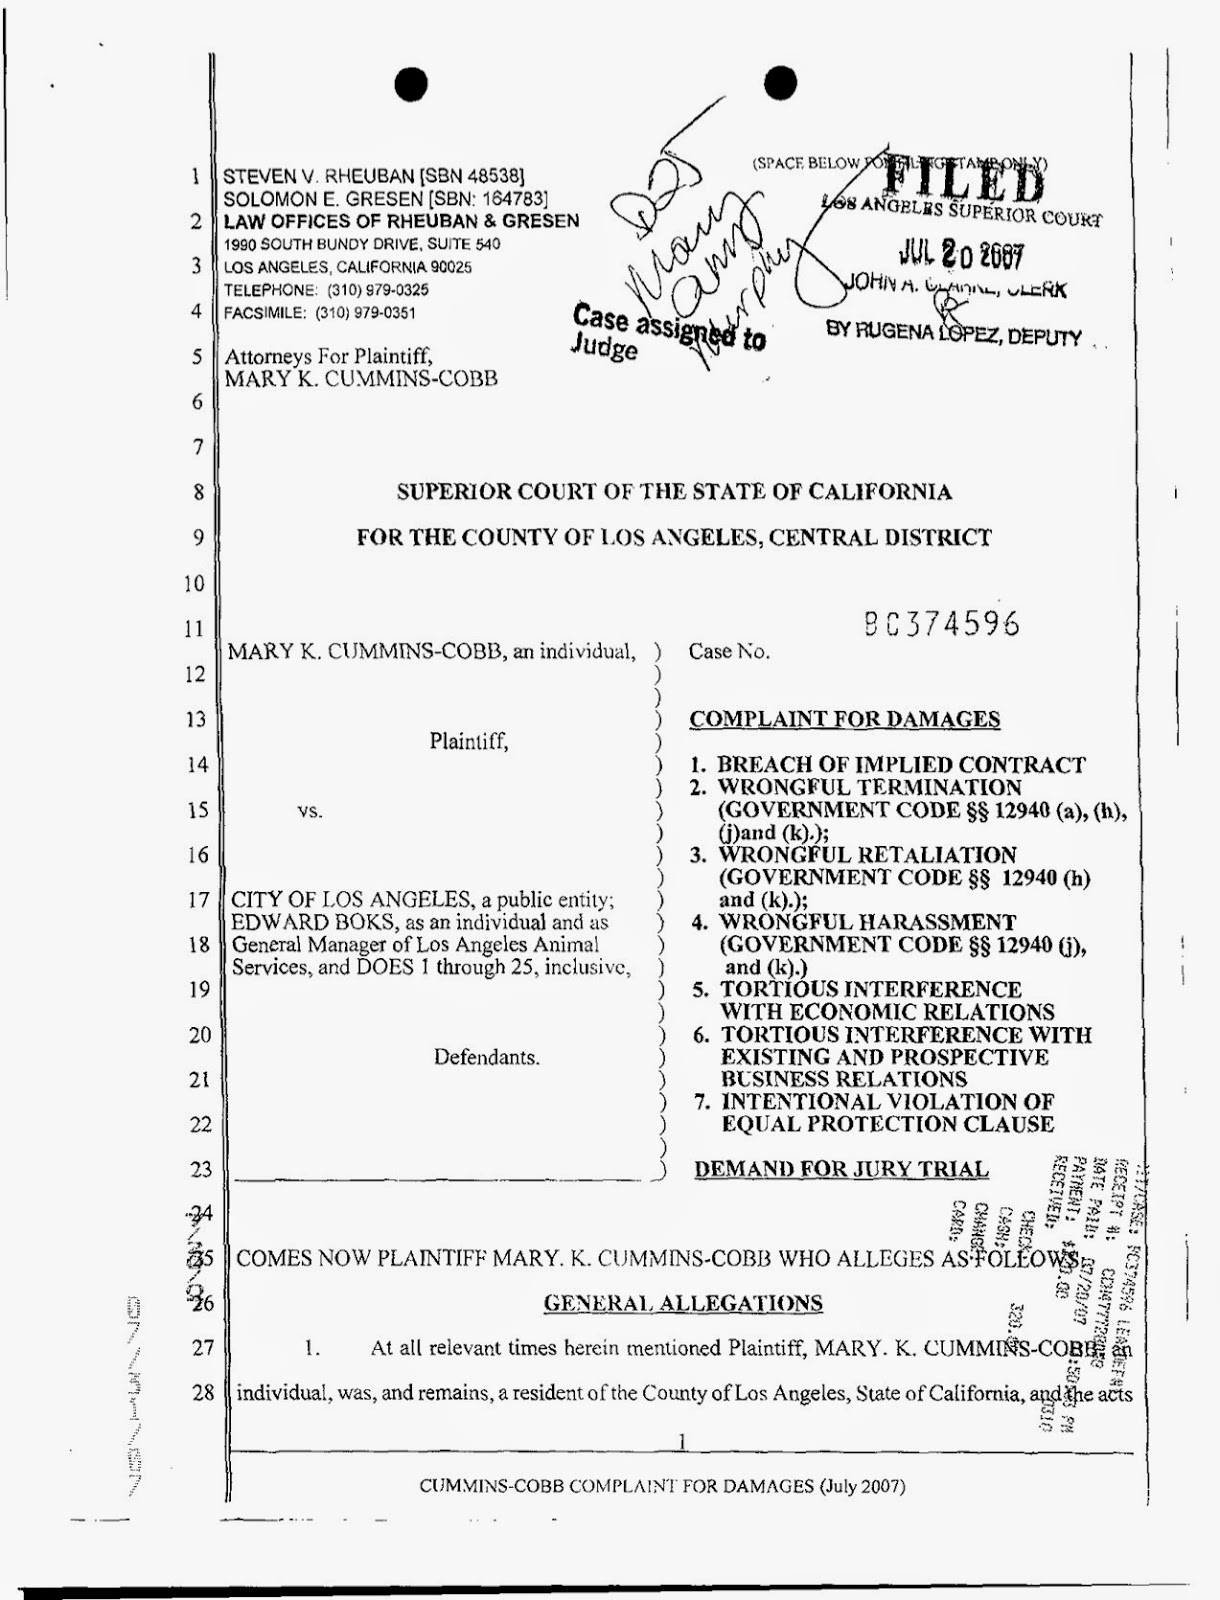 Mary Cummins, Mary Cummins-Cobb vs City of Los Angeles, Ed Boks, Edward Boks, lawsuit, complaint, sexual harassment, win, settlement.